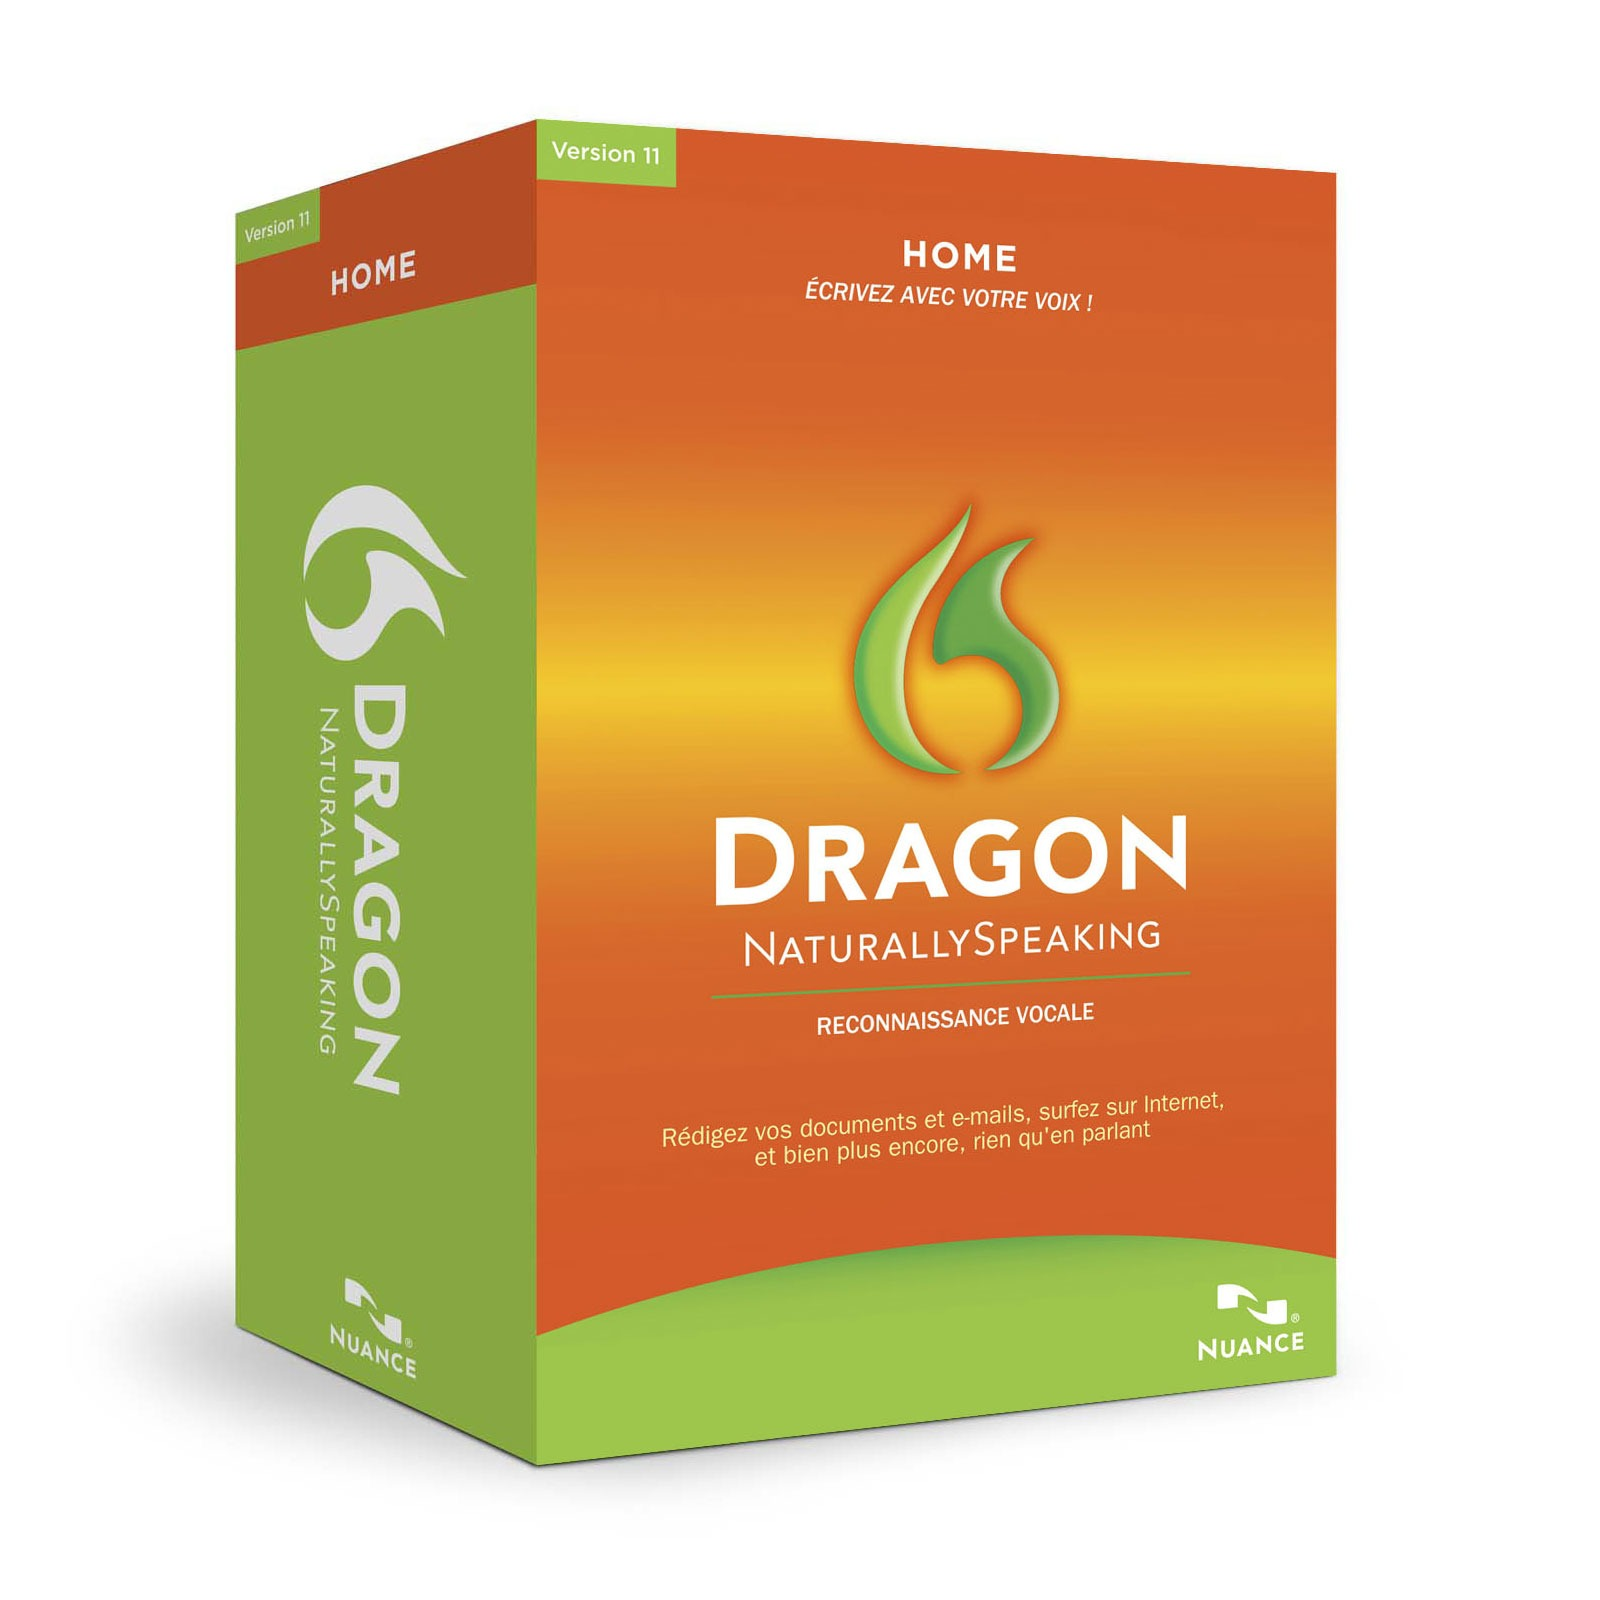 nuance dragon naturallyspeaking 11 home logiciel. Black Bedroom Furniture Sets. Home Design Ideas